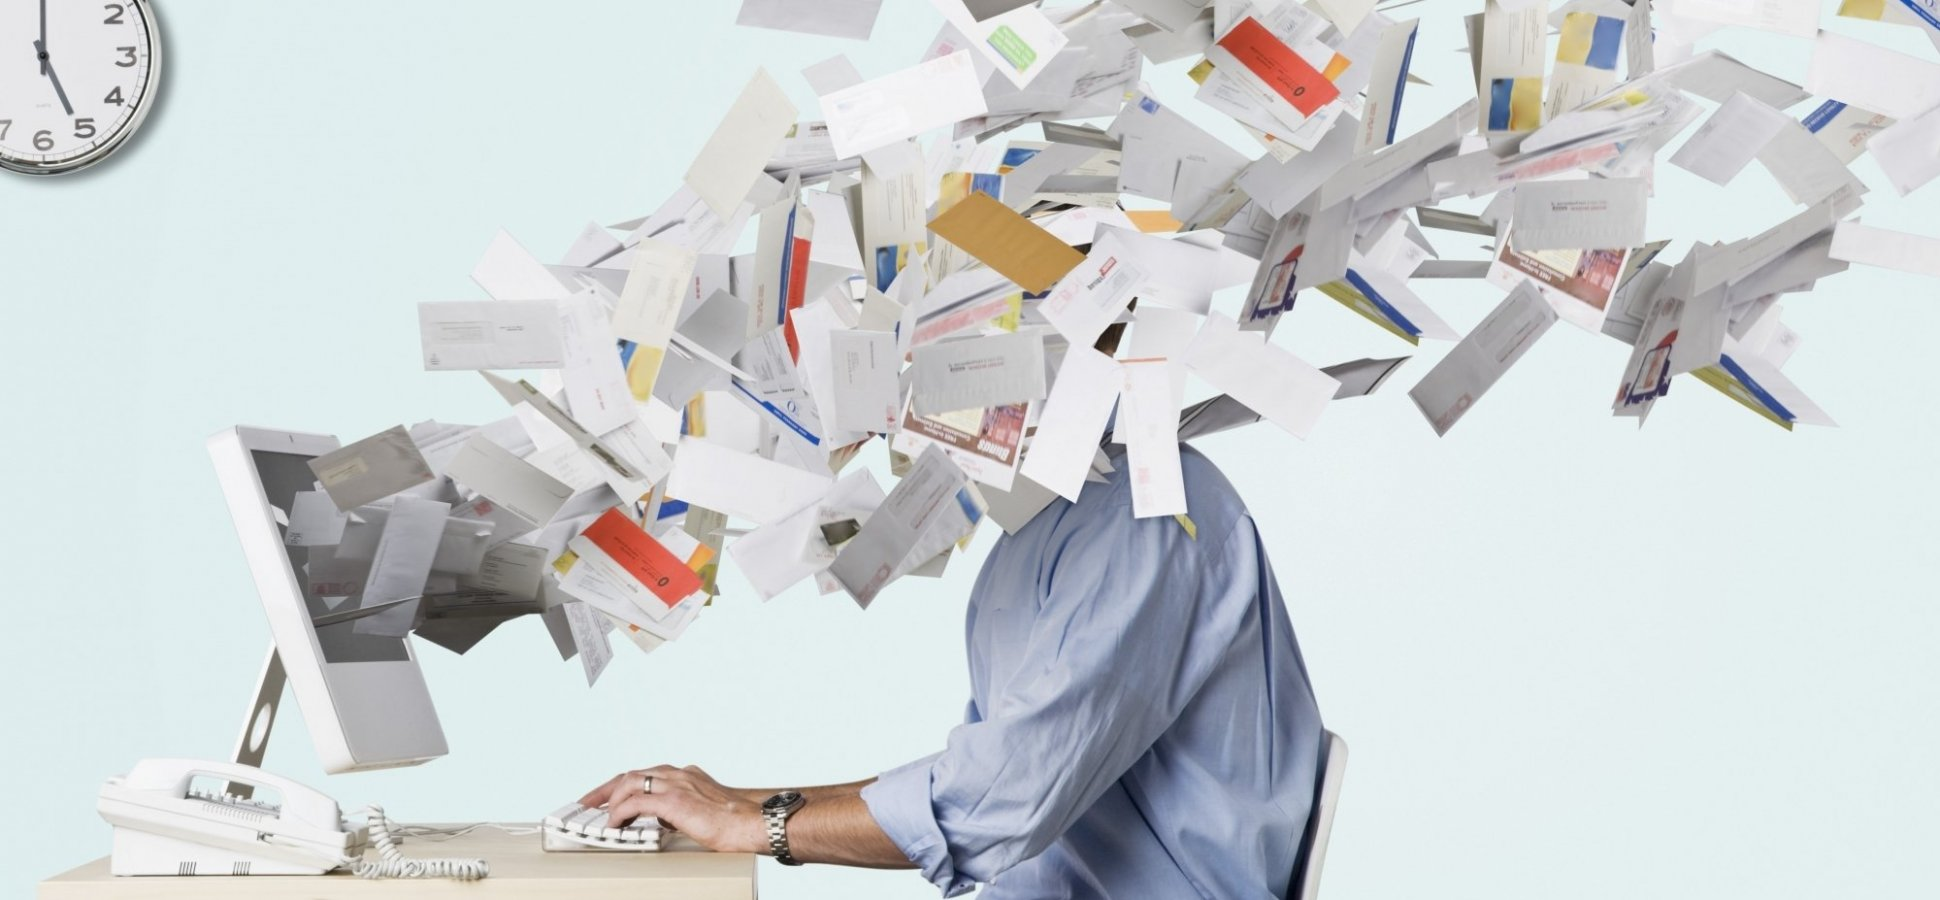 A Study Of 300000 Messages Reveals The Best Way To Start An Email